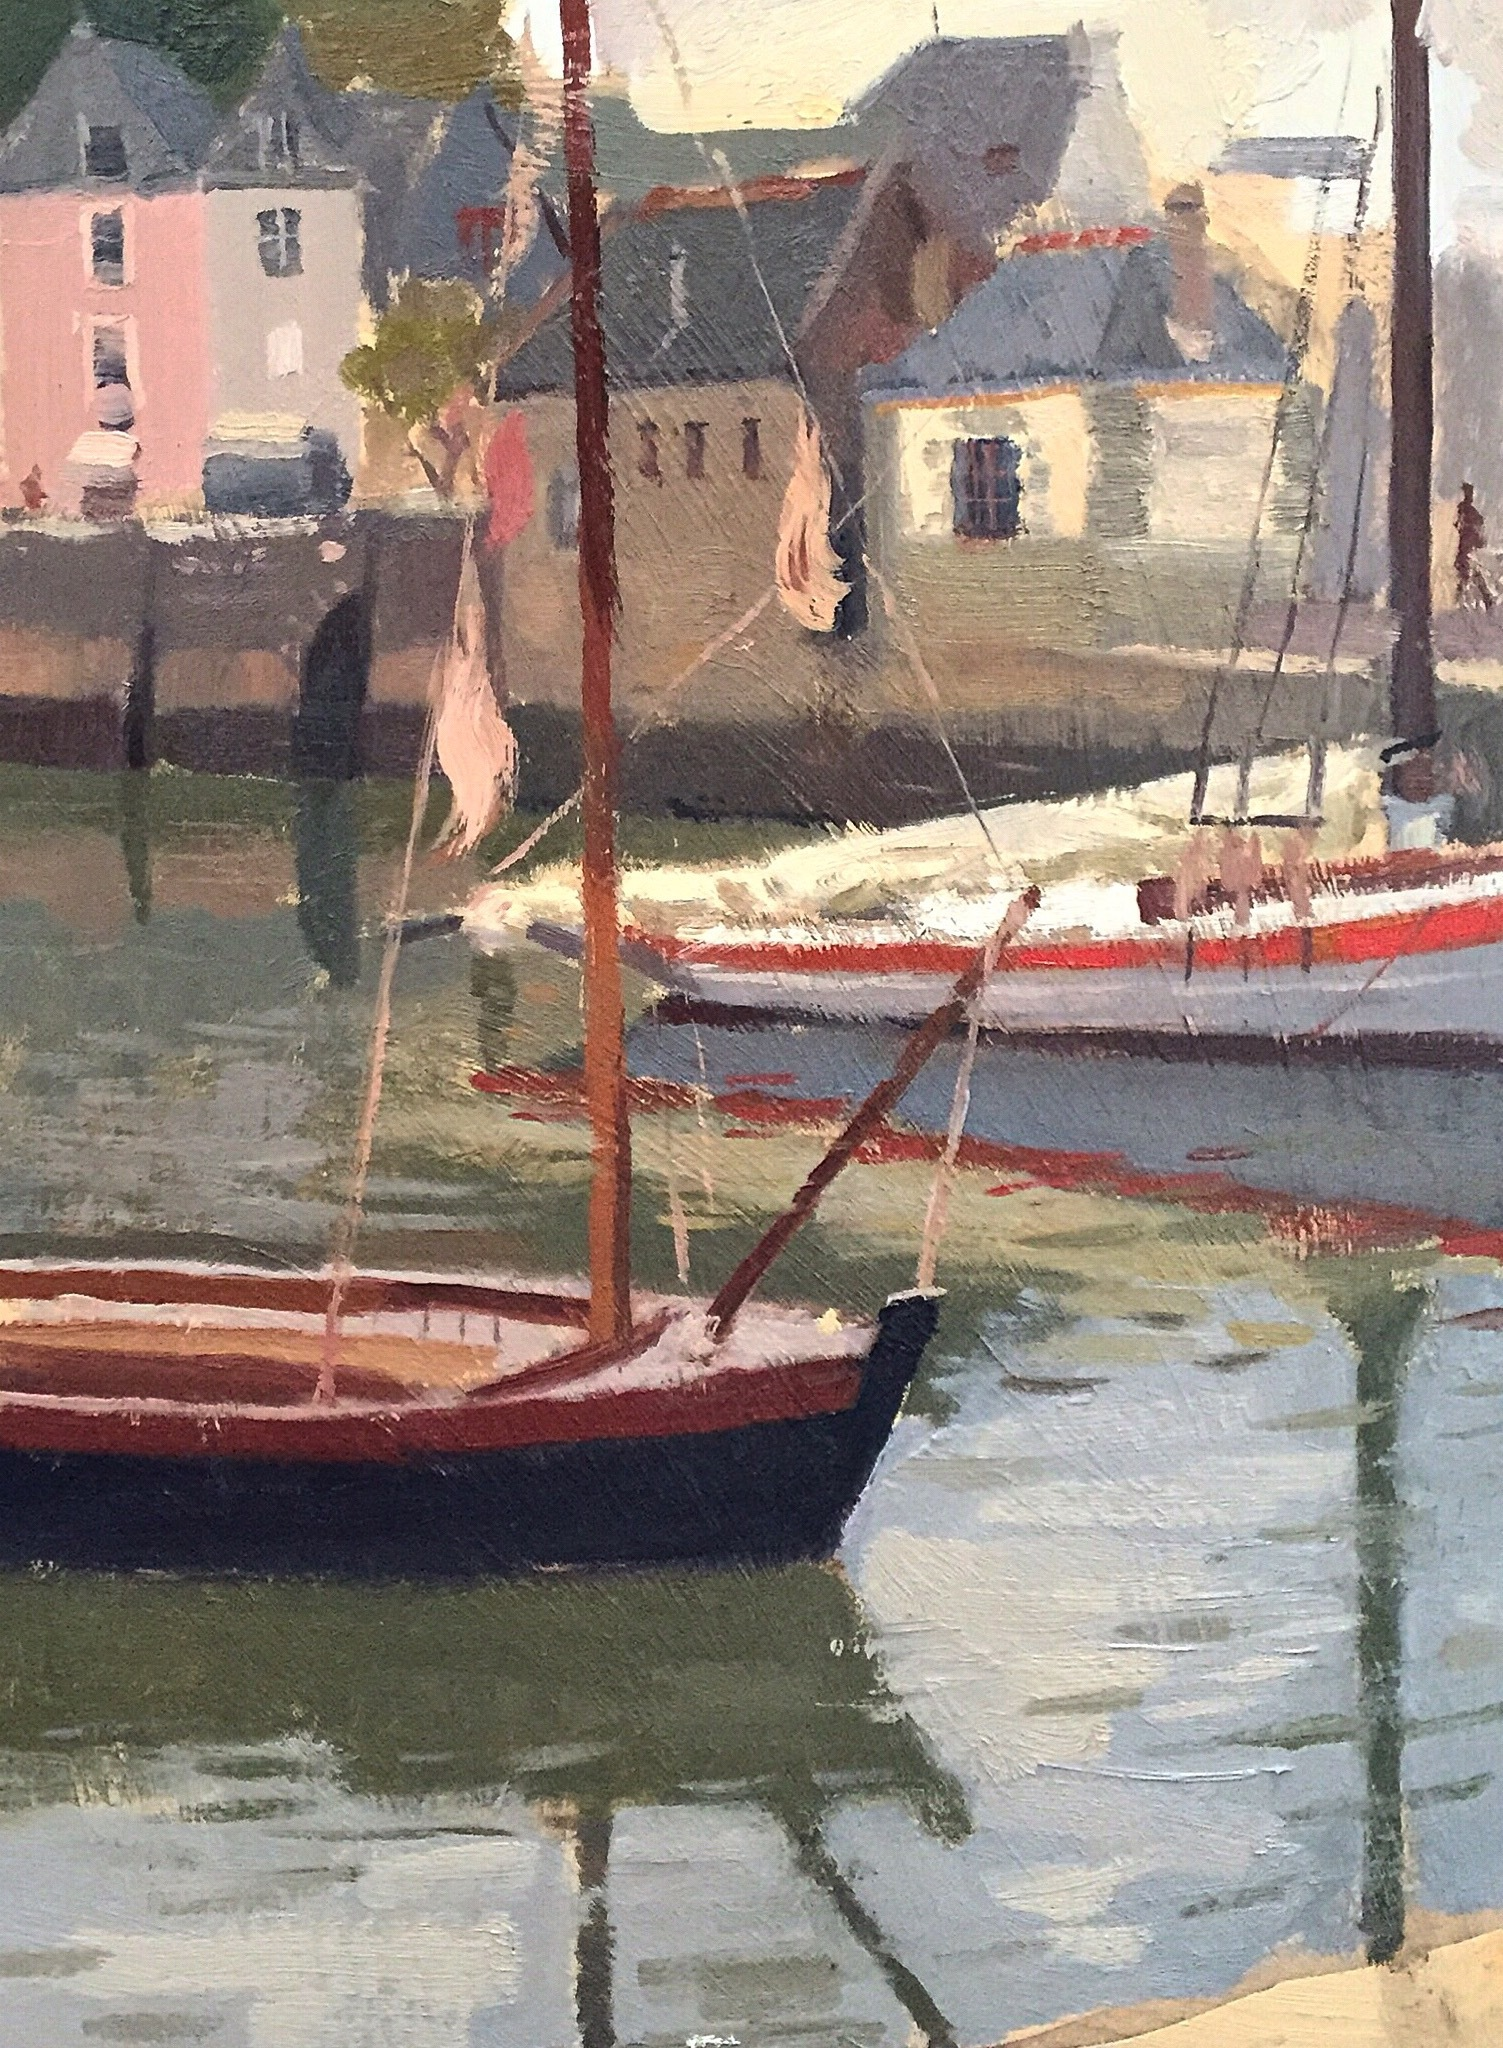 Boats in Aurey, Brittany